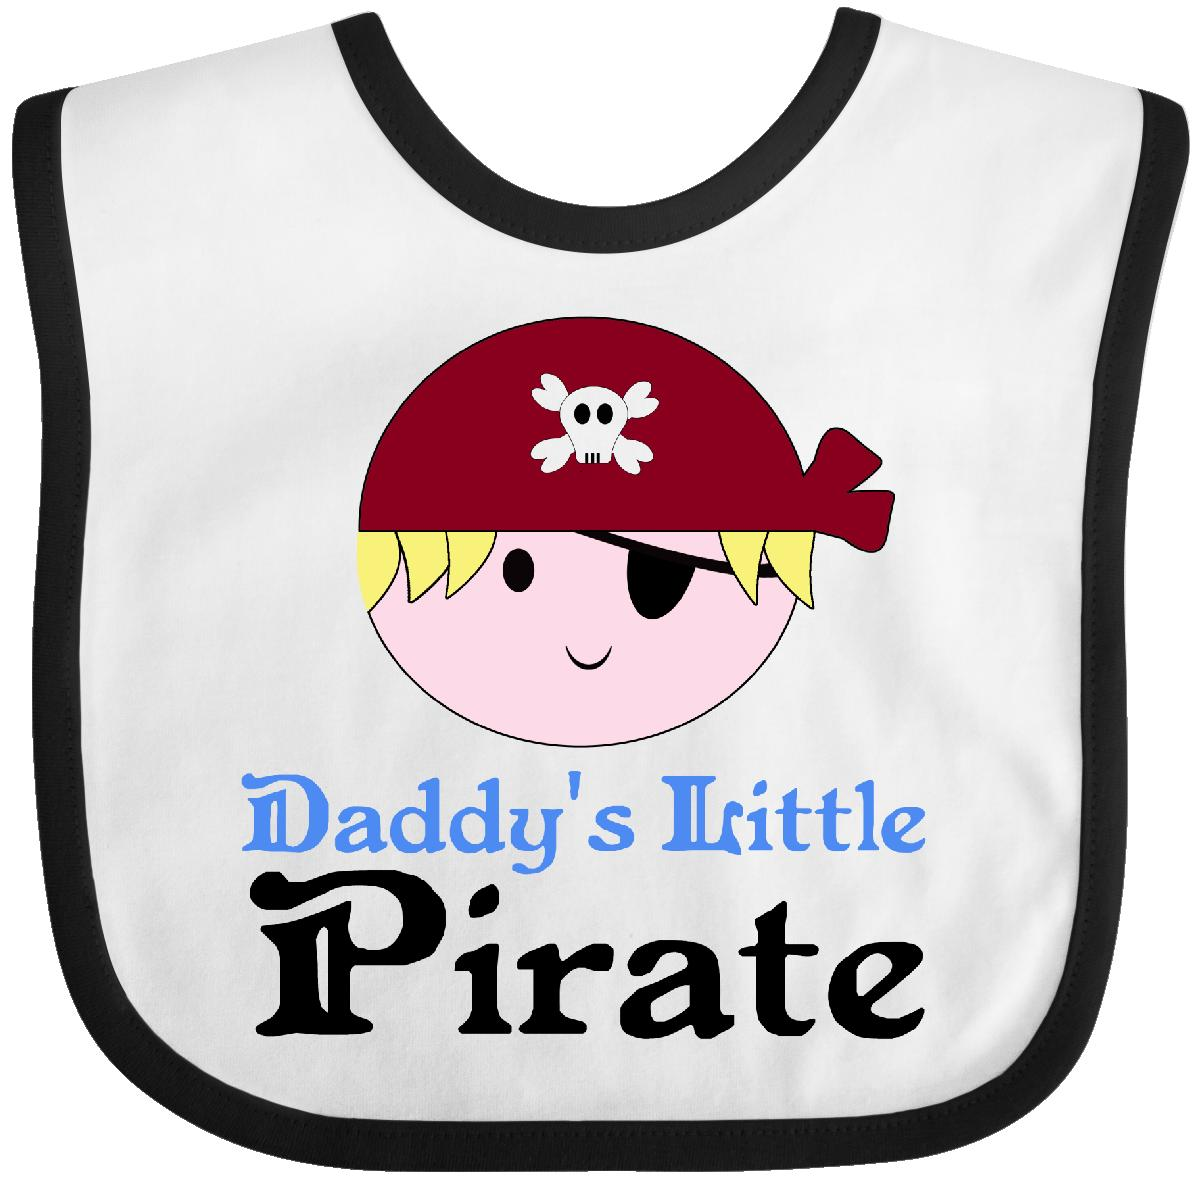 Inktastic Little Pirate Boy Baby Bib kids cute daddys captain skull and crossbones funny gift clothing infant hws